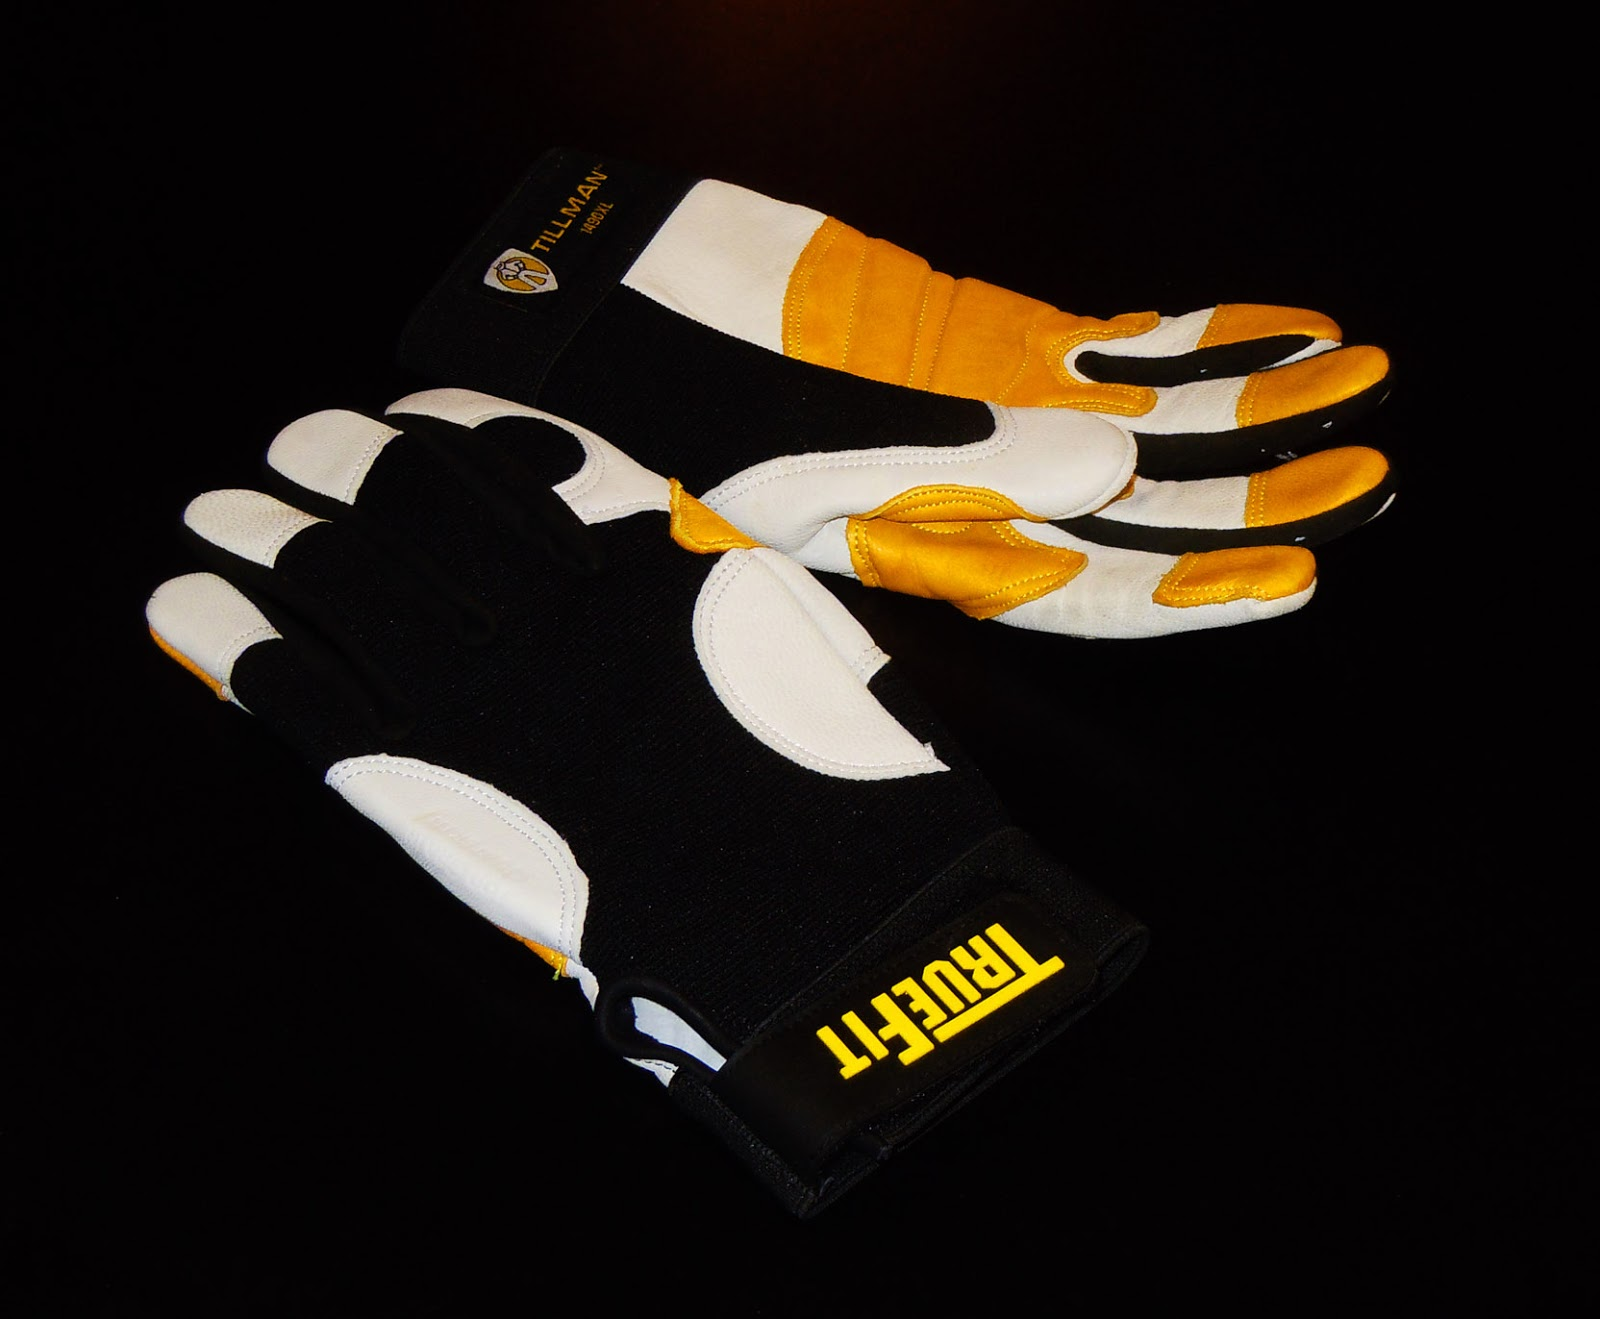 Tillman leather work gloves -  These Gloves Tend To Run A Little Small Xl Is A Very Popular Size For Most Men An Xxl Size Which Is Their Largest Glove Is Also Available